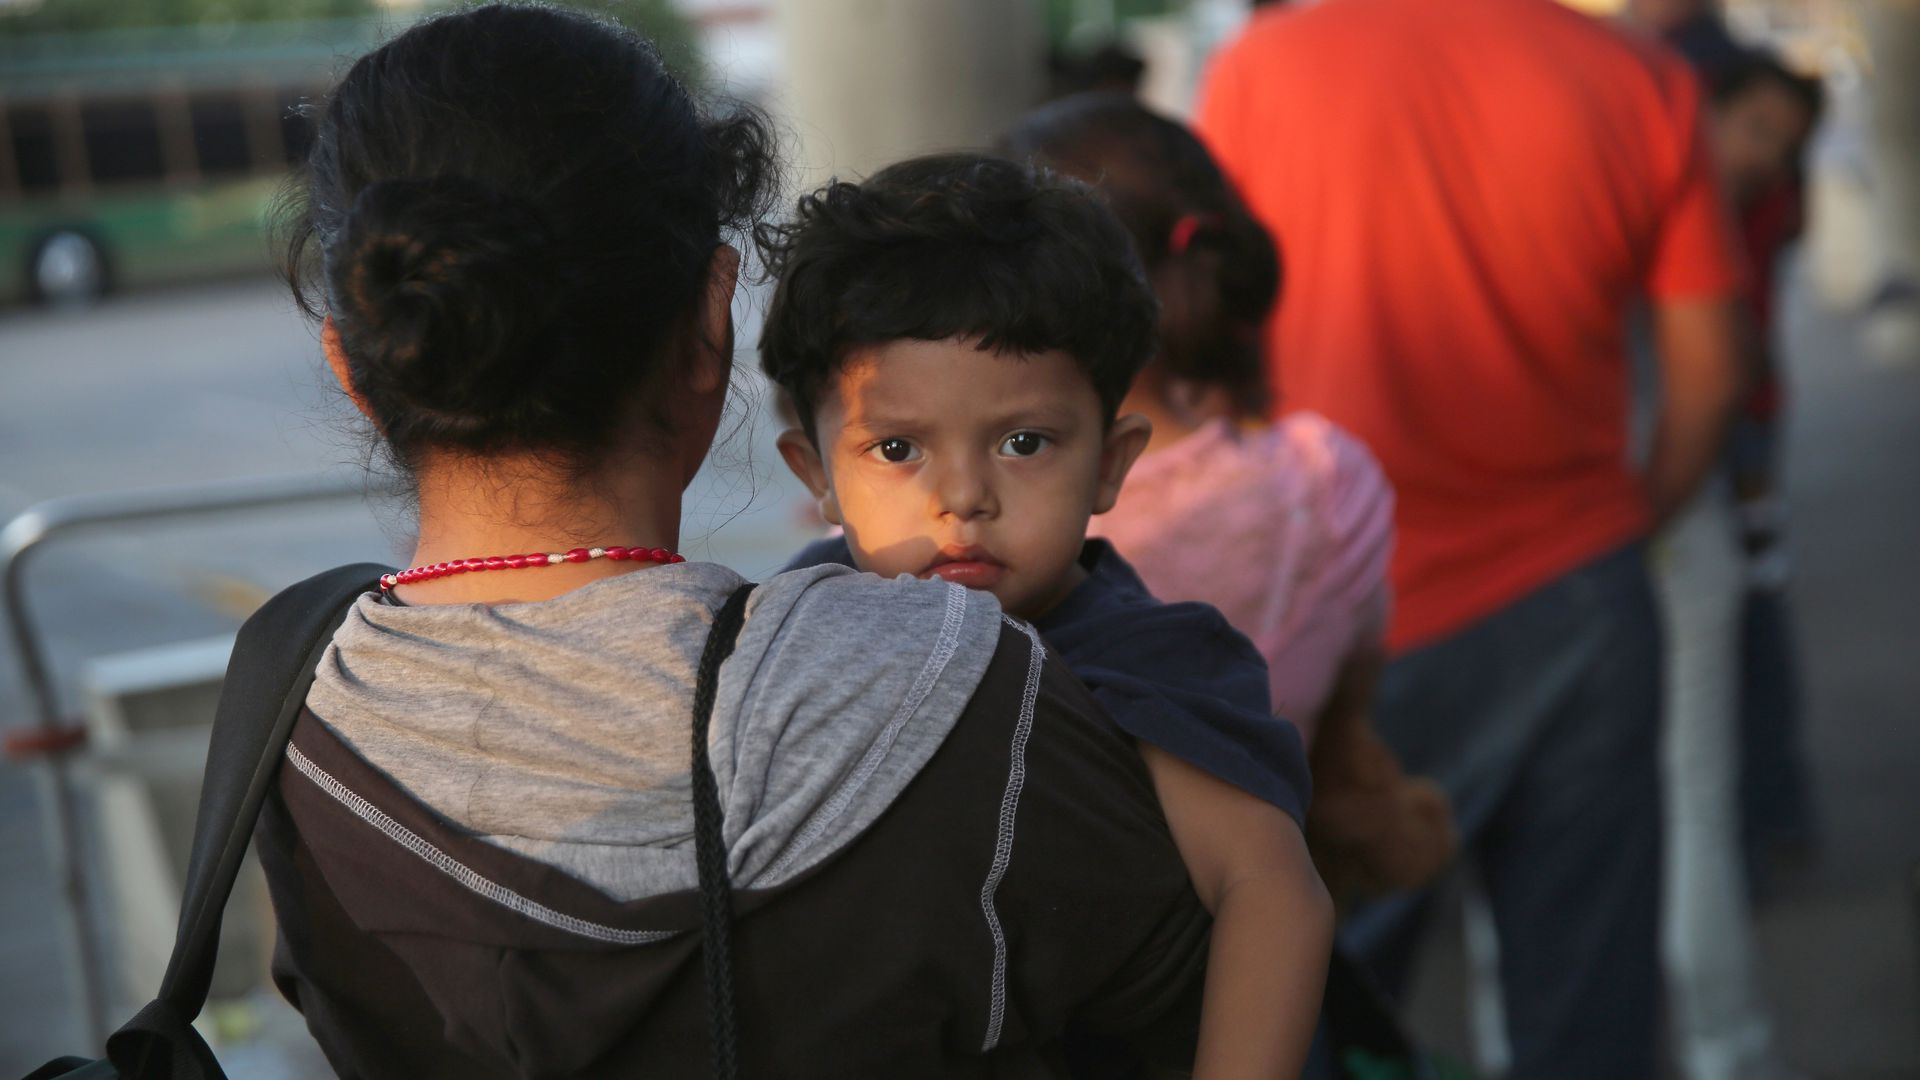 Report: Border patrol holding hundreds of migrant kids beyond legal 72 hours